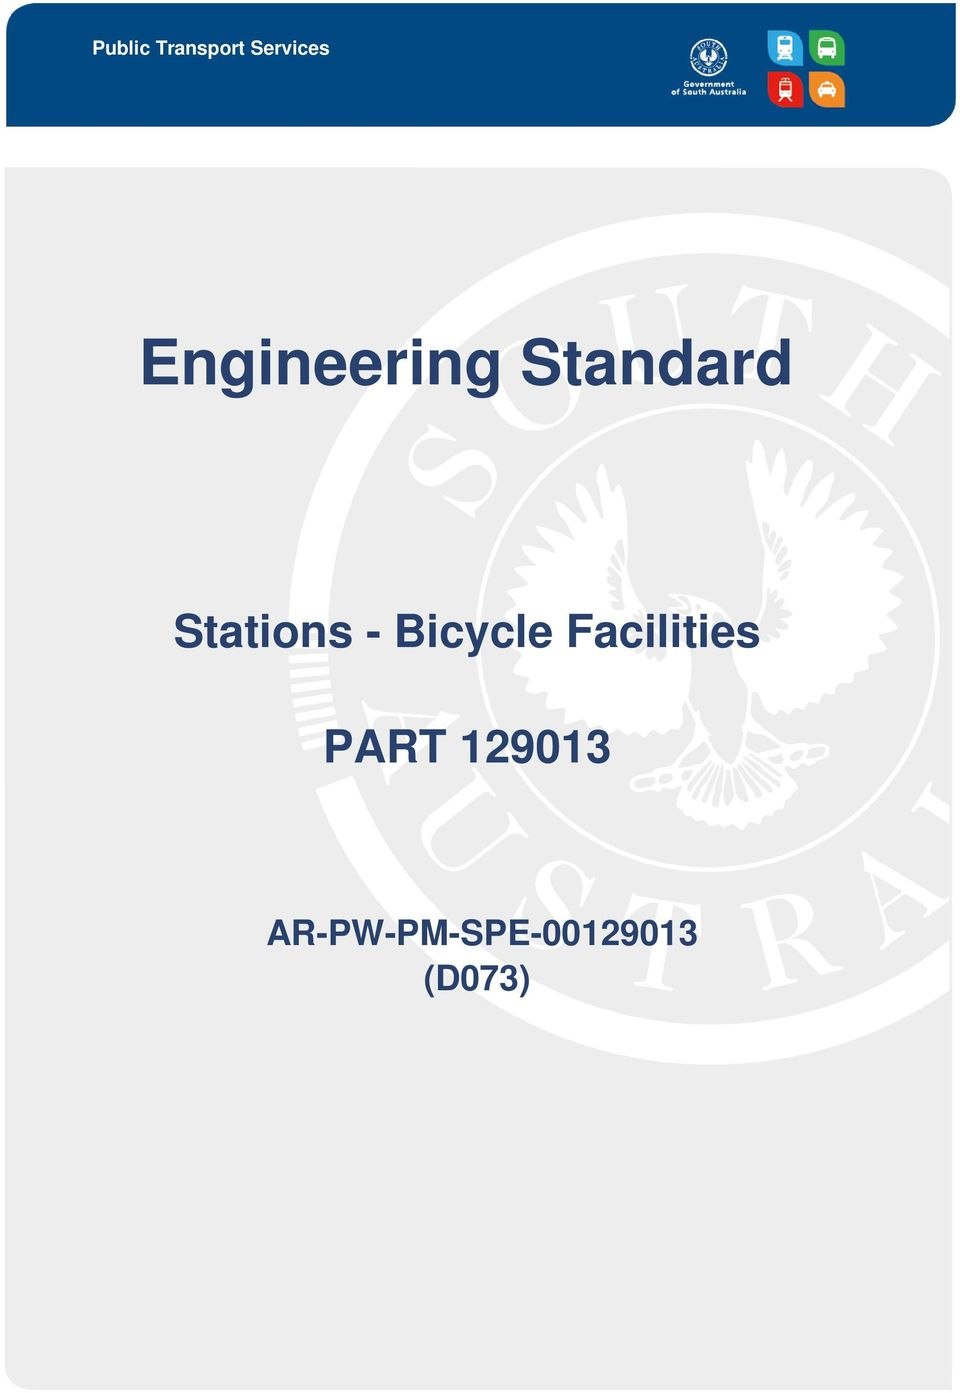 - Bicycle Facilities PART